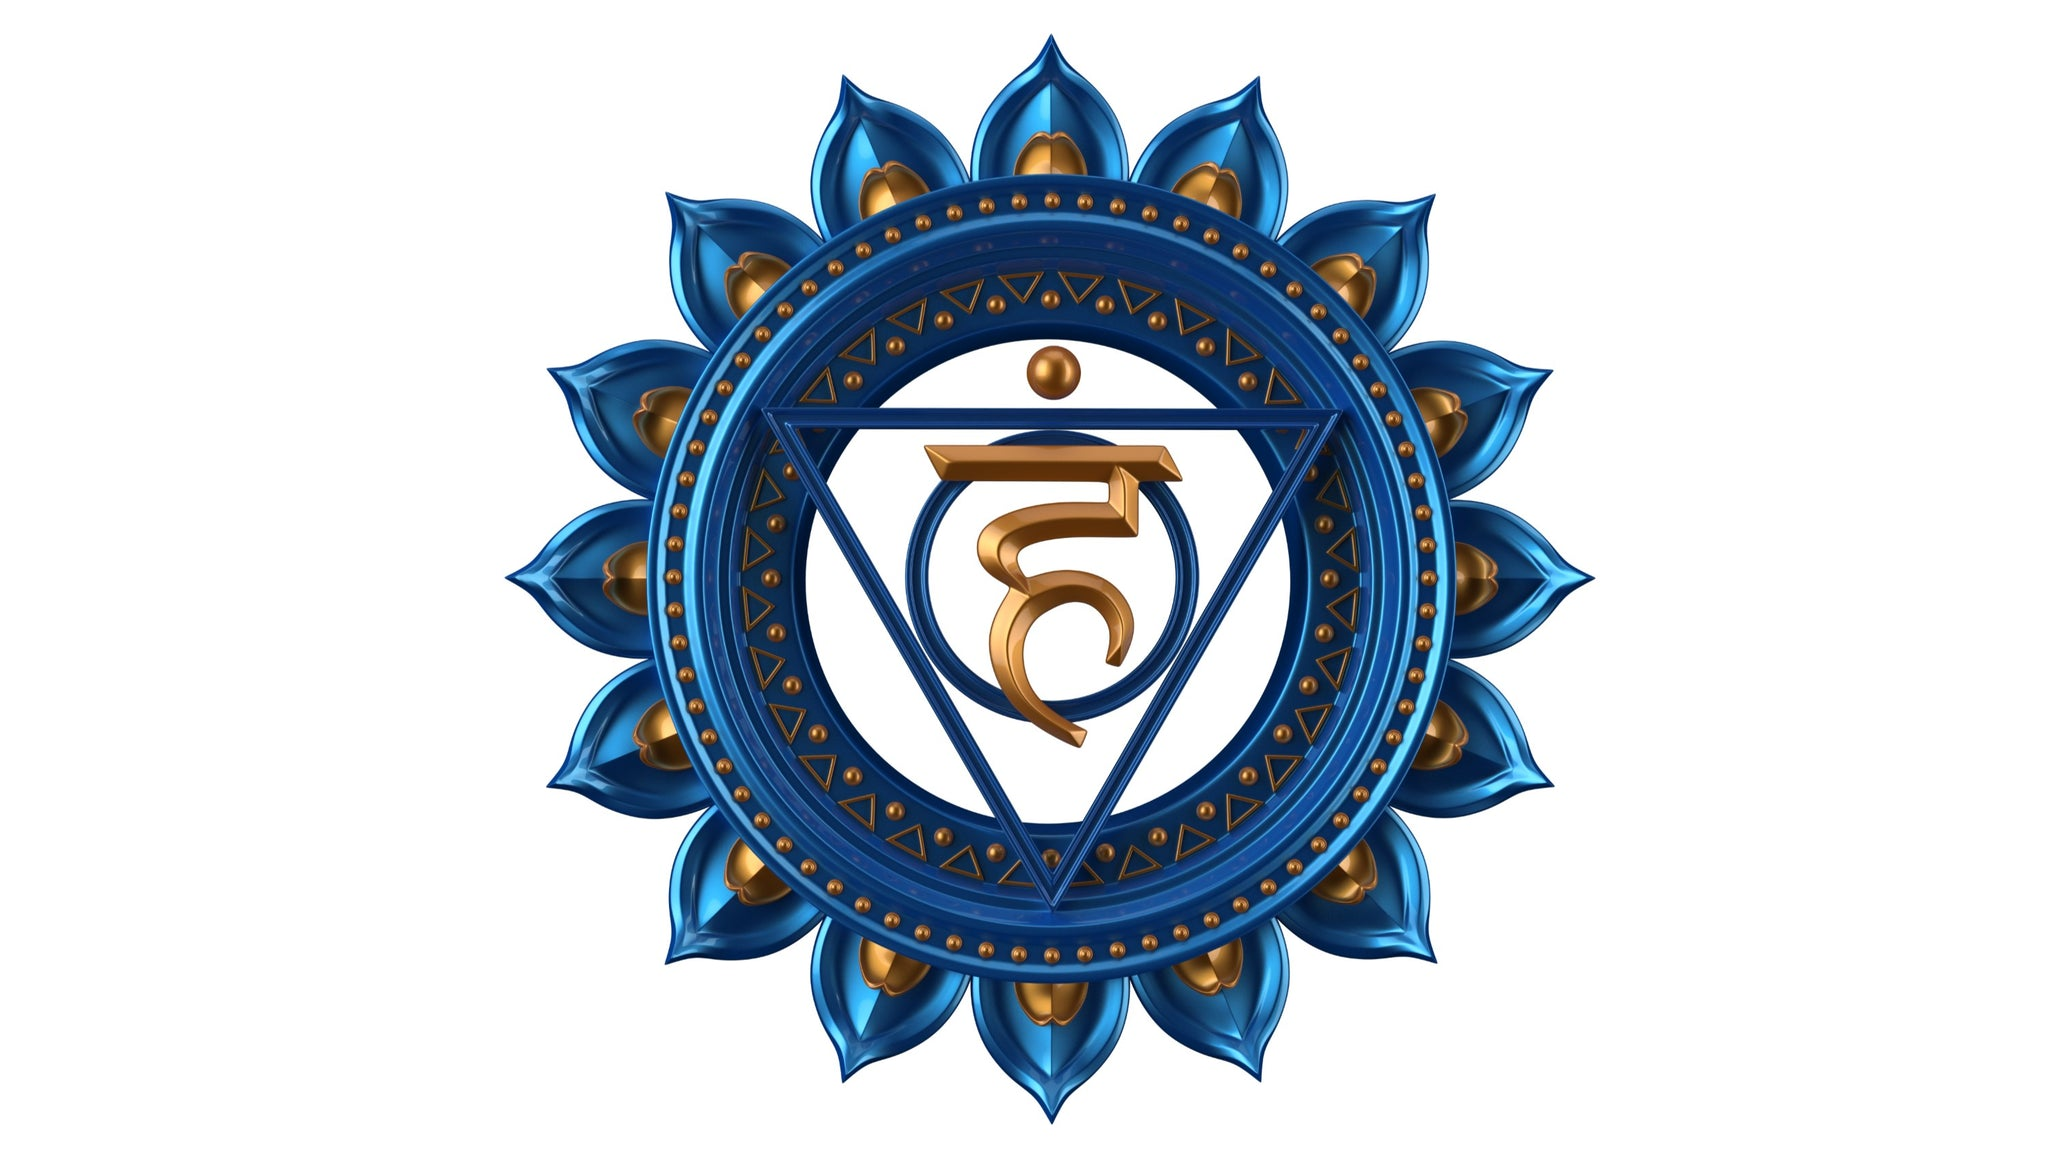 Image of the throat chakra - Vishuddha symbol